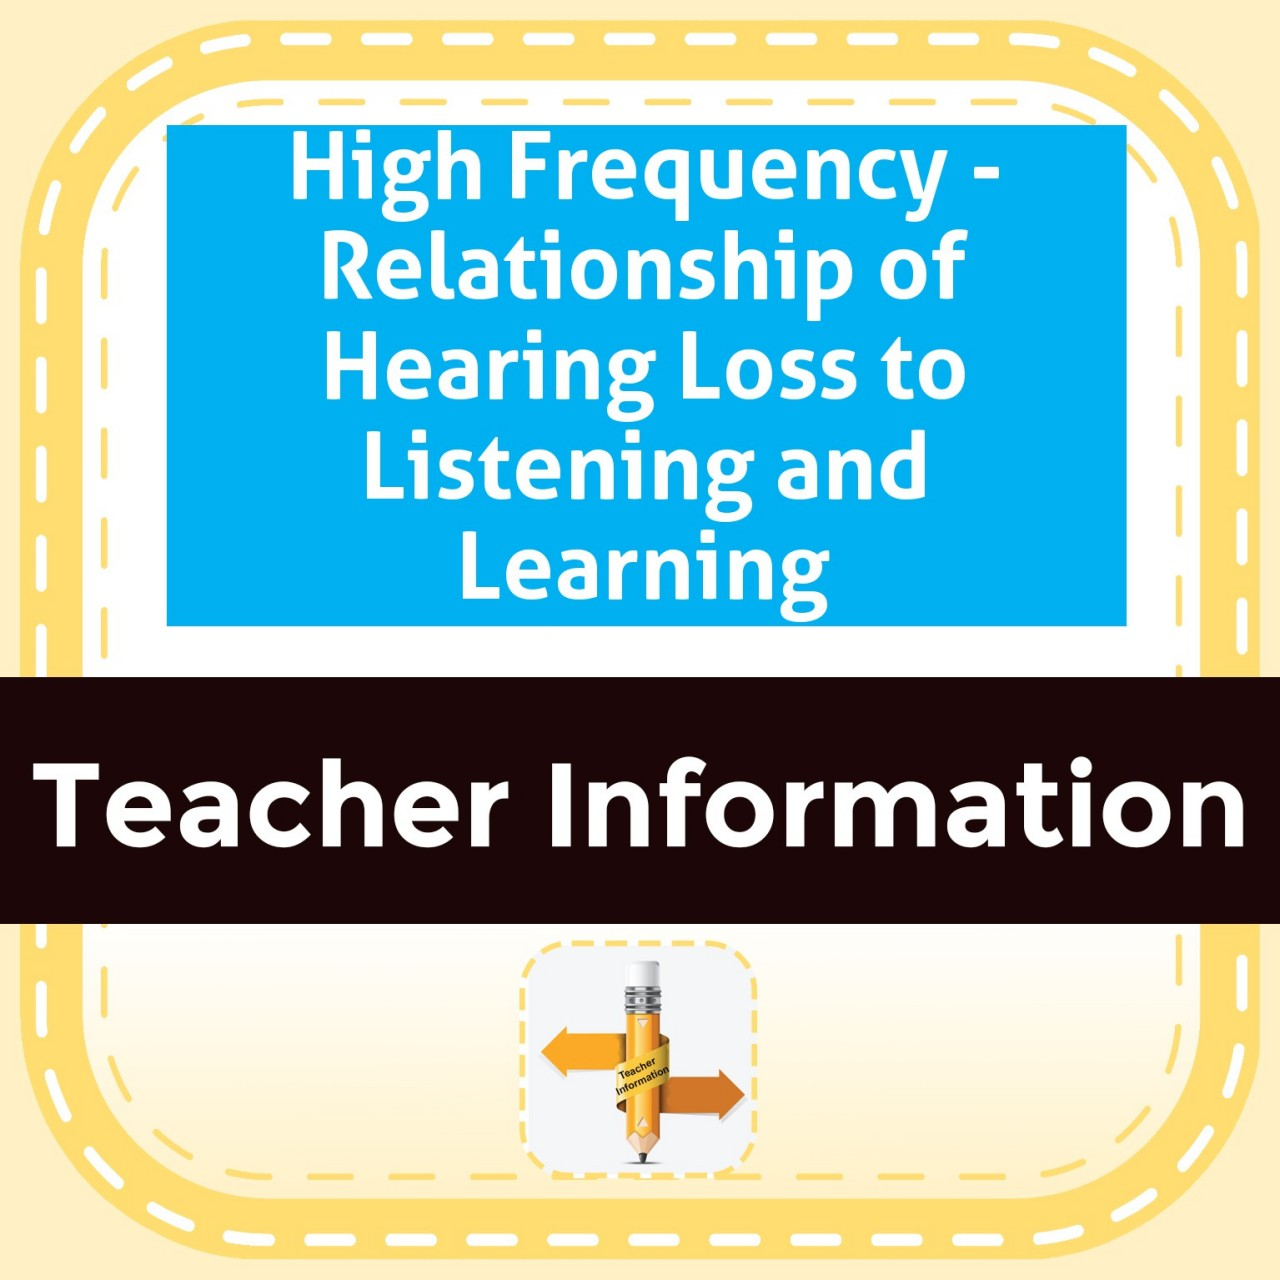 High Frequency - Relationship of Hearing Loss to Listening and Learning